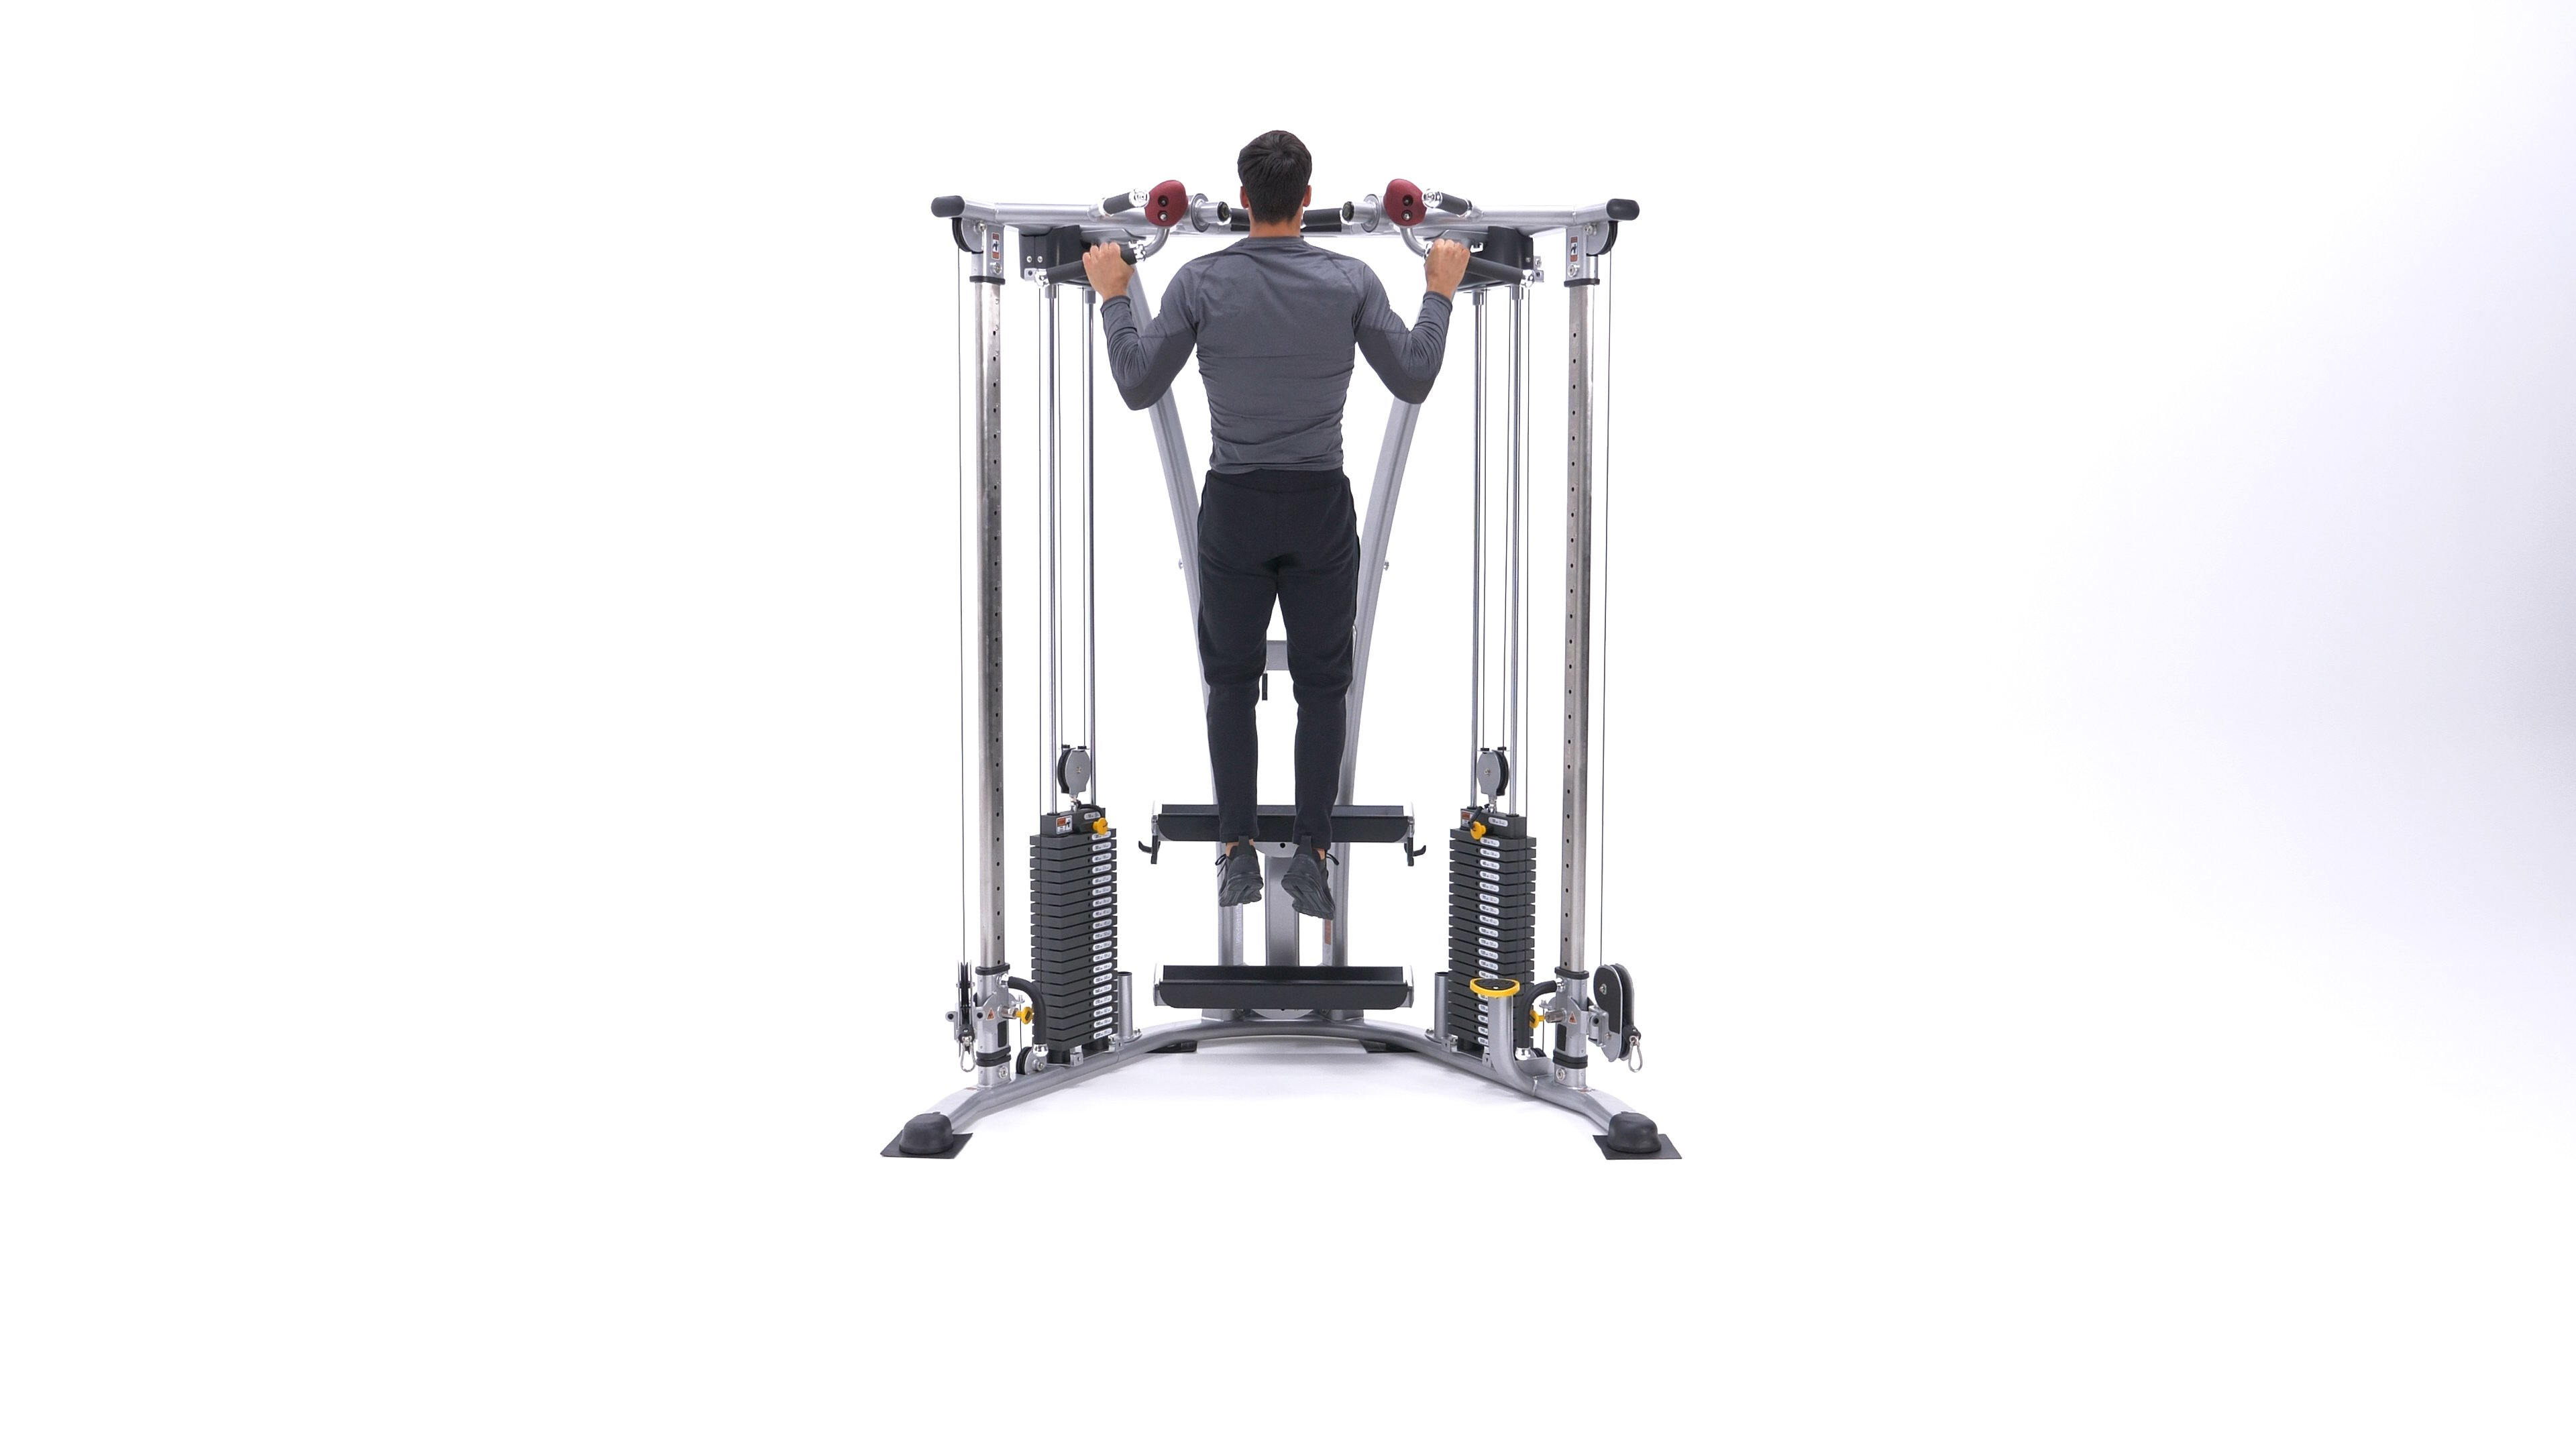 Burpee to pull-up image